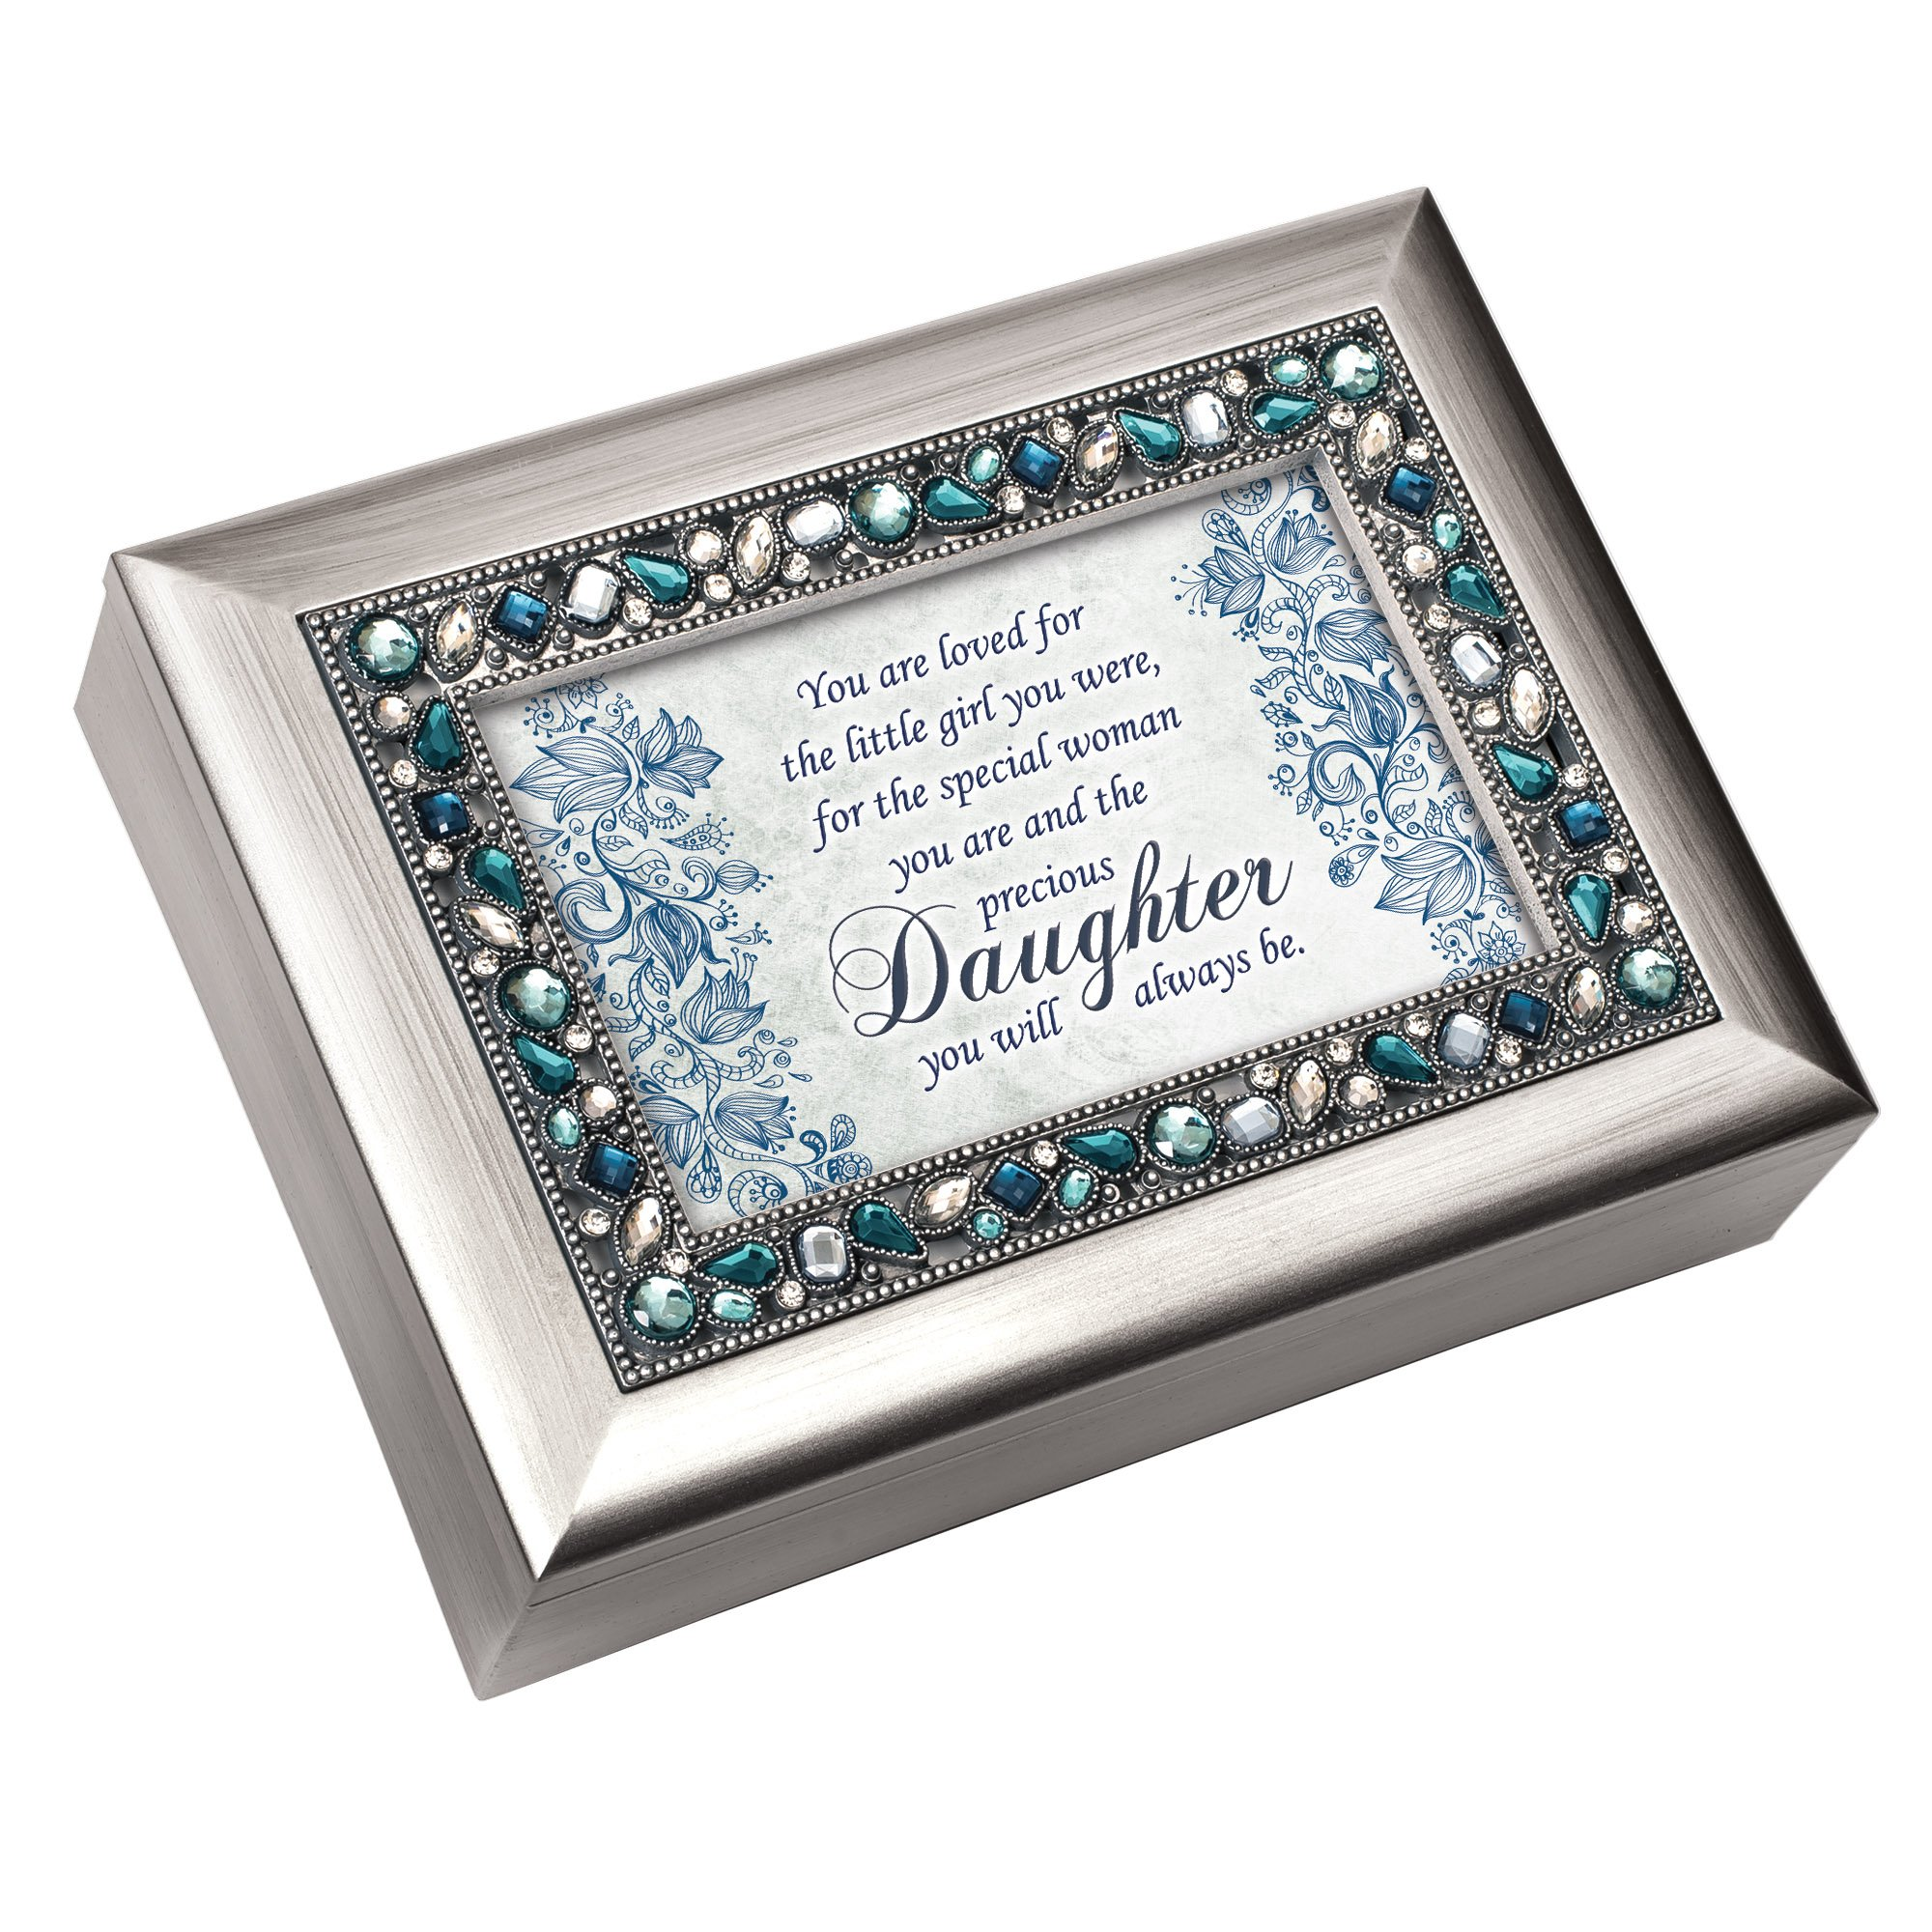 Special Woman Precious Daughter Jeweled Silver Colored Keepsake Music Box Plays You Light Up My Life by Cottage Garden (Image #1)